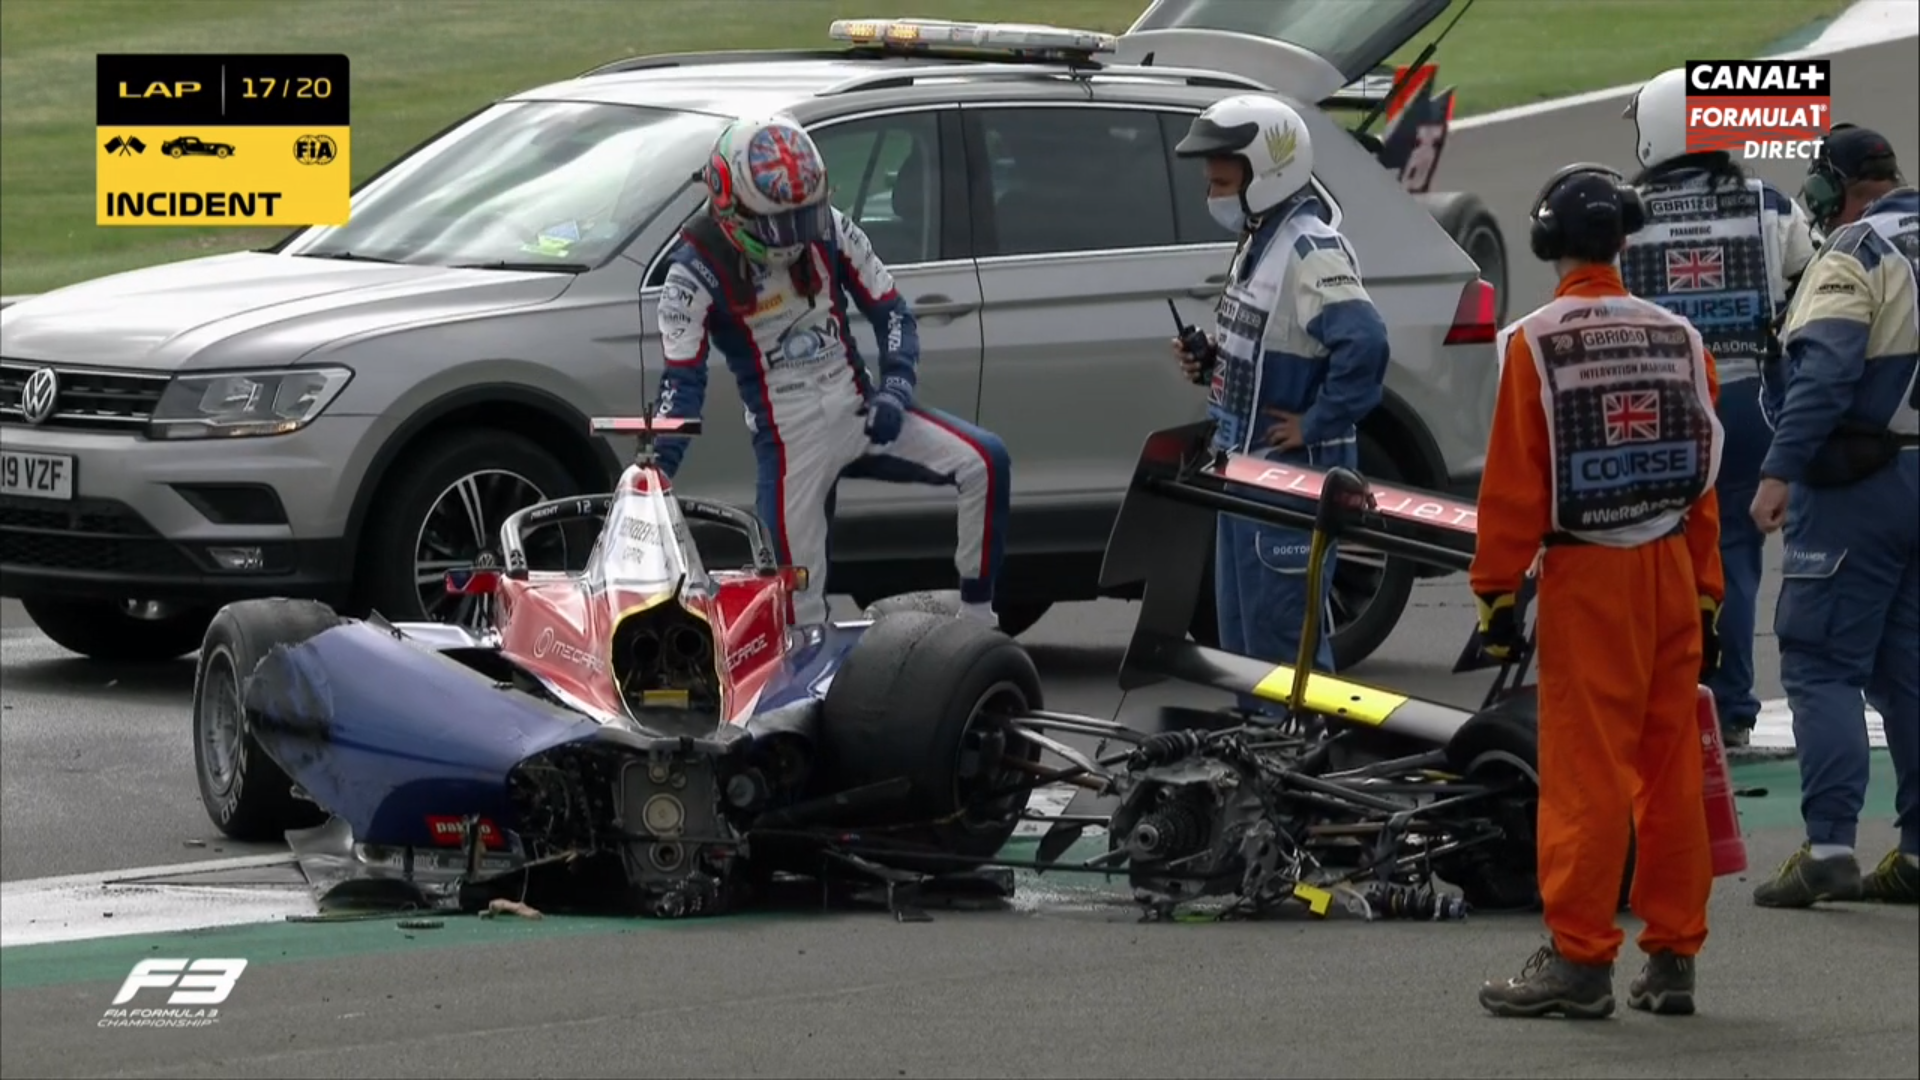 VIDEO: Formula 3 Car Broke In Two Pieces After This Crash